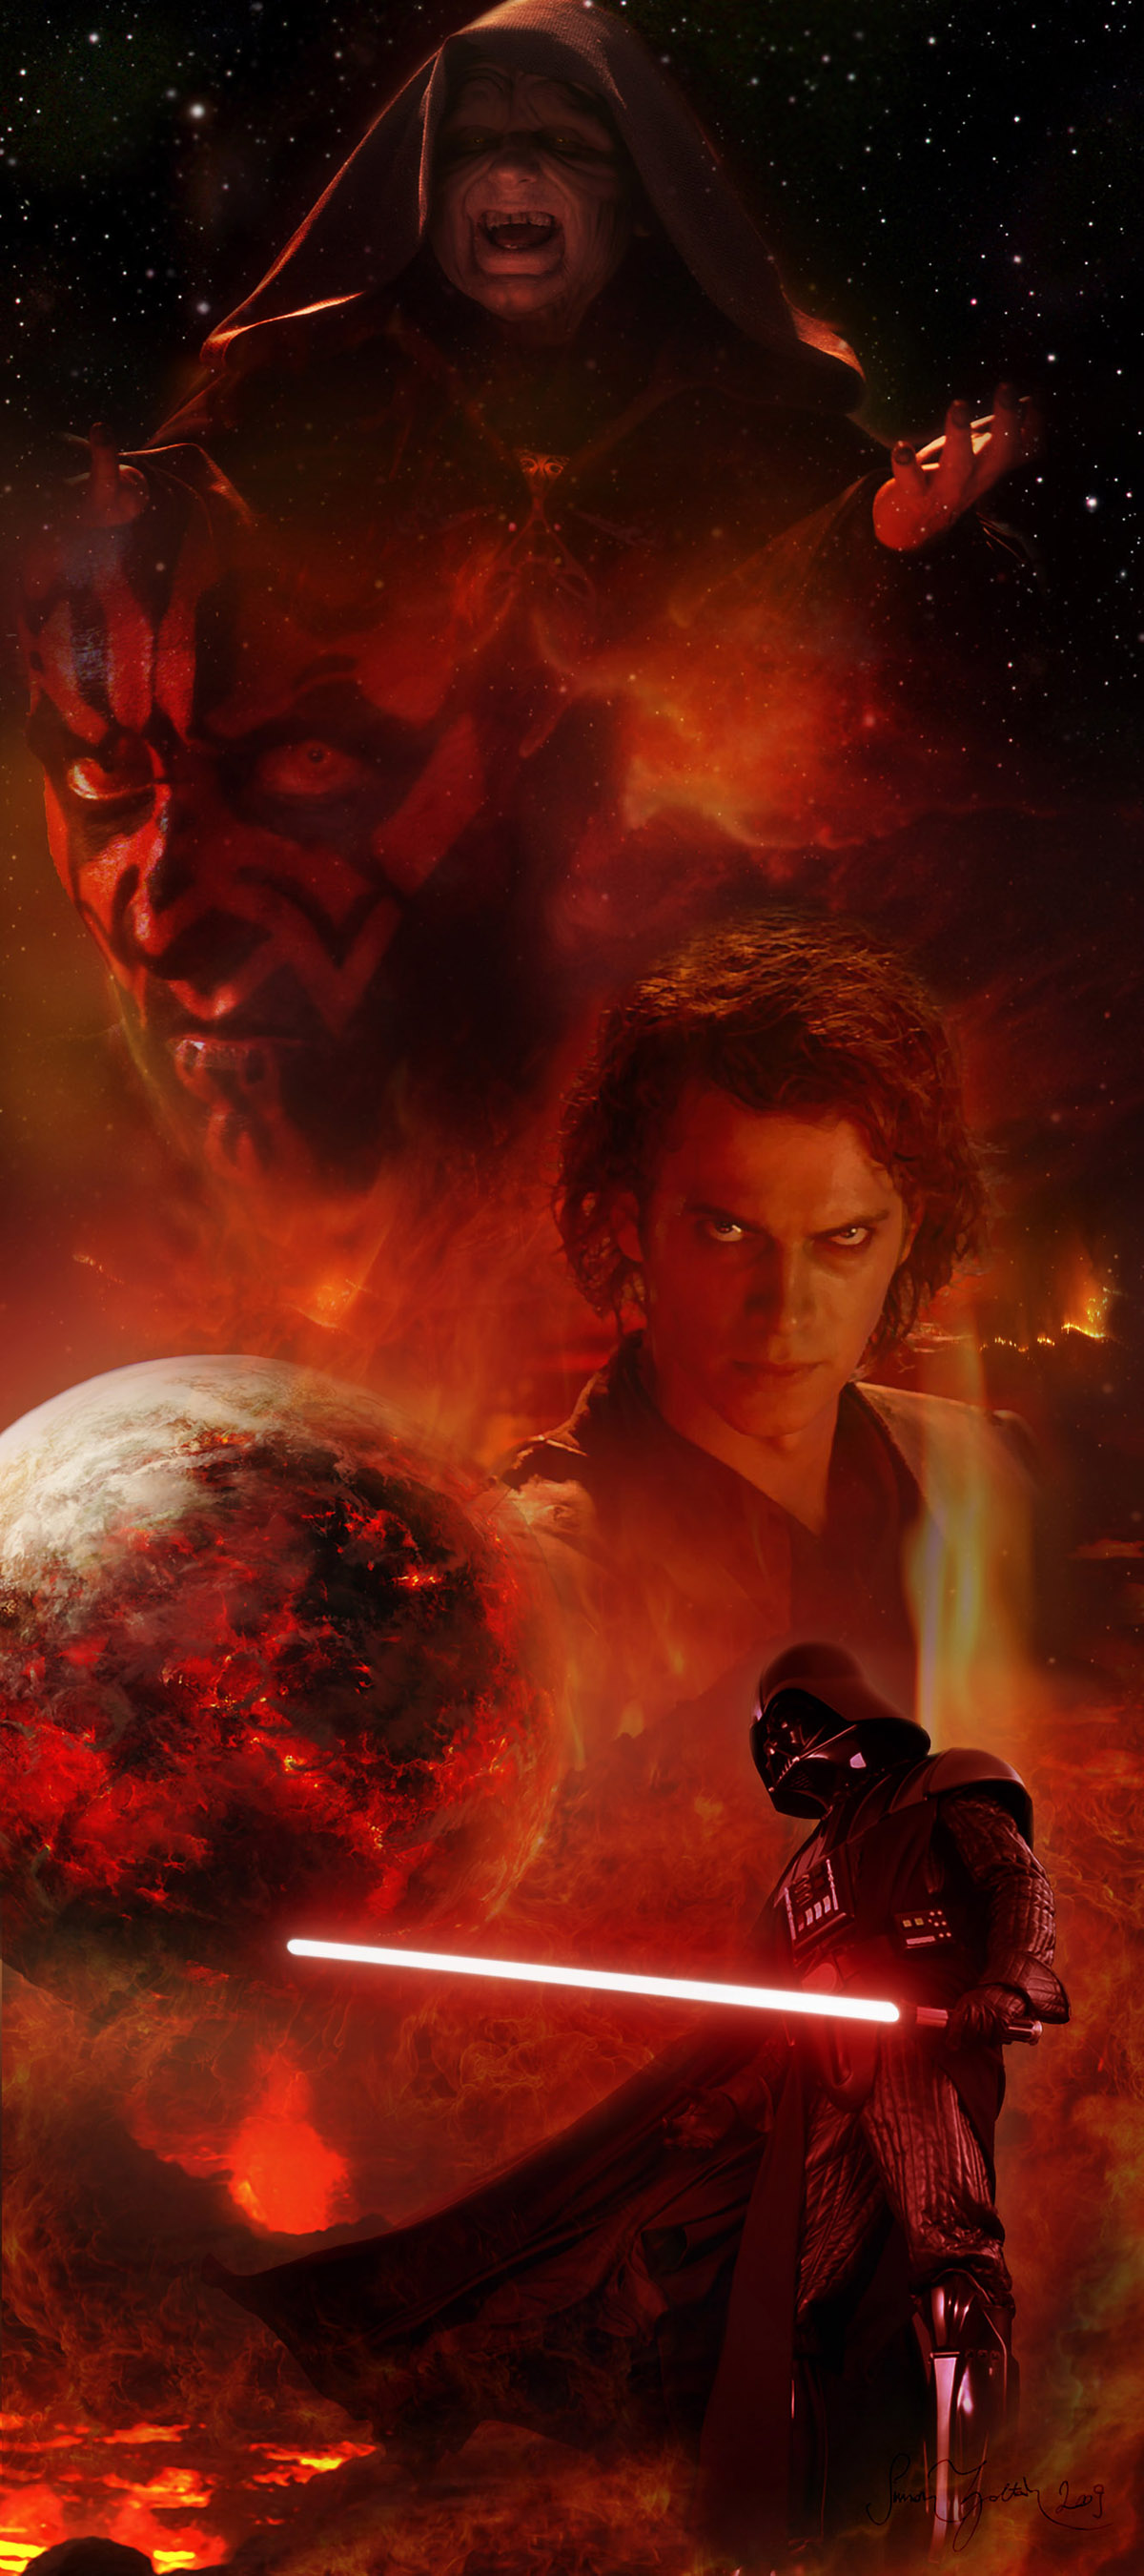 Simonz S Home Page Star Wars Wallpapers Posters Cover Designs